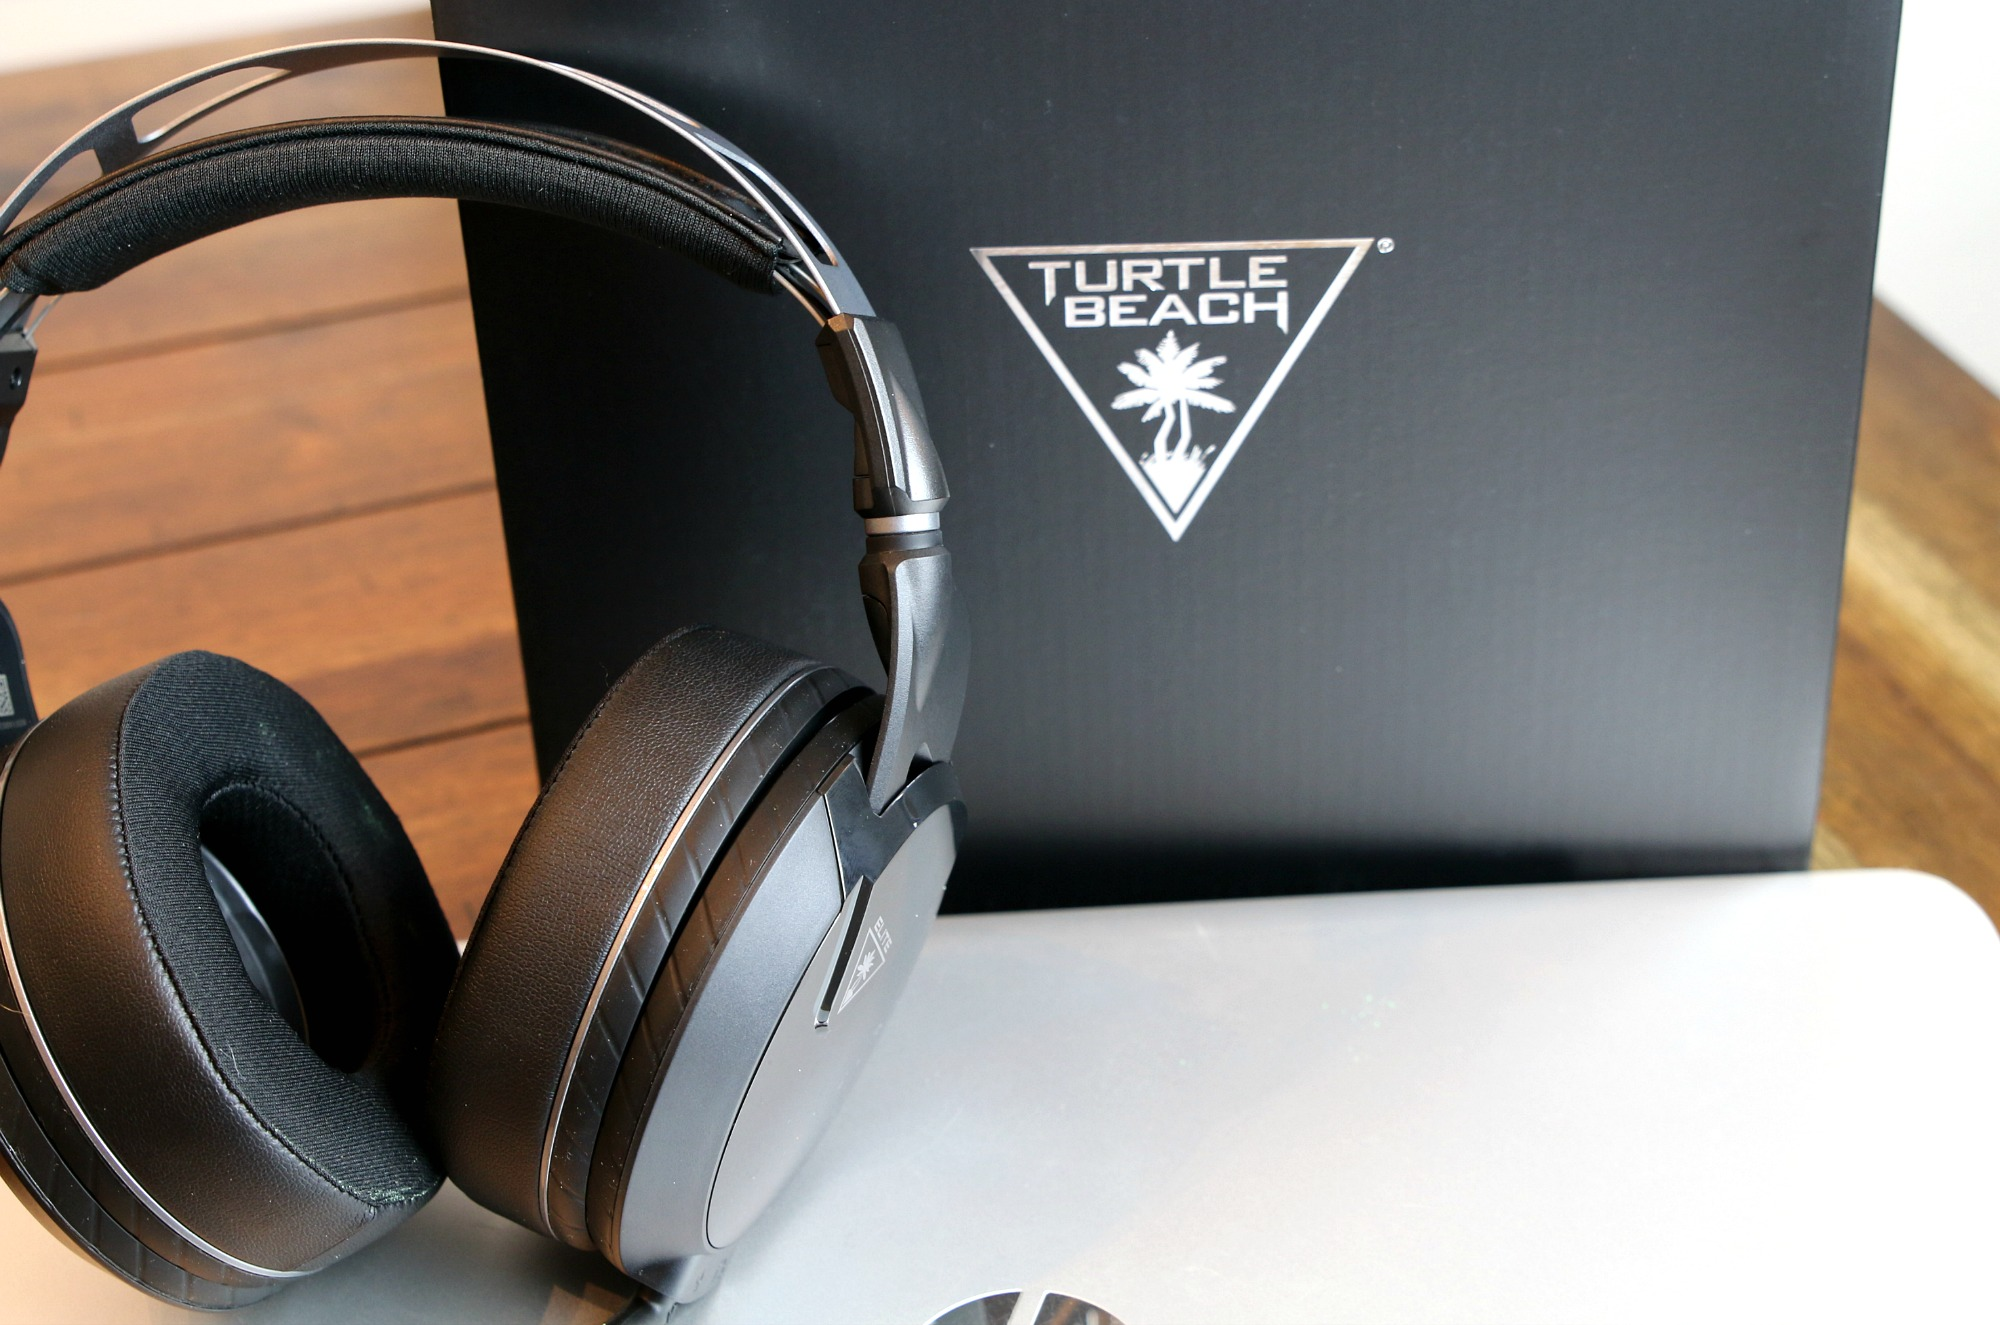 Turtle Beach headphone pads